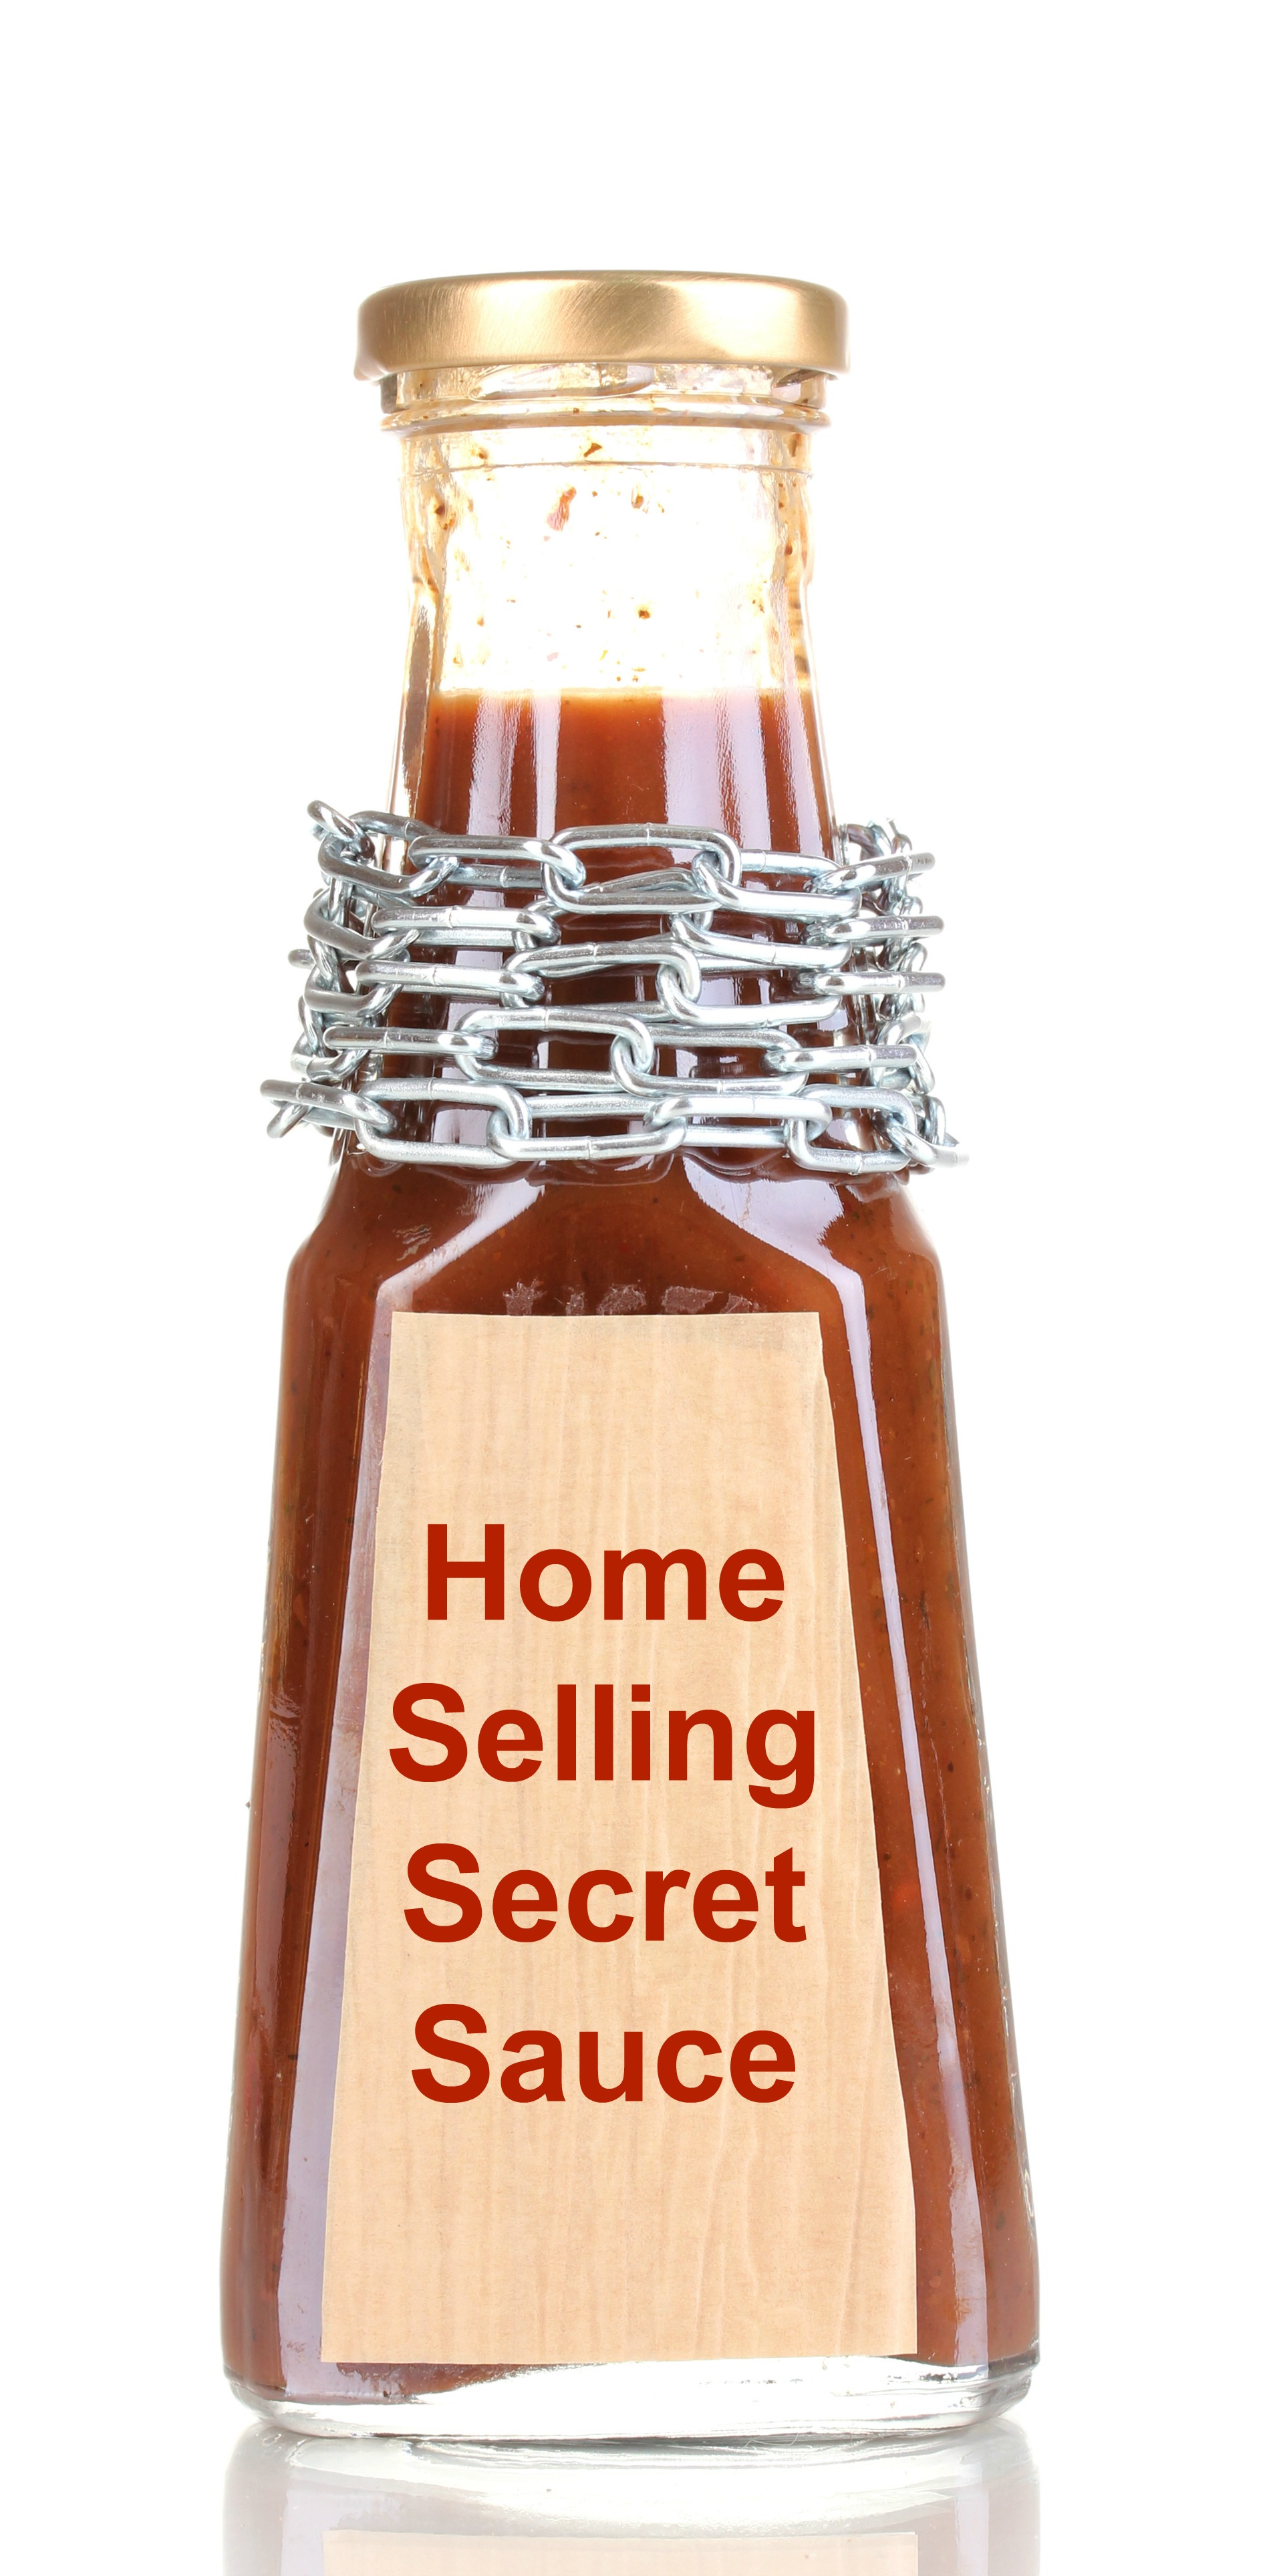 Home Selling Secret Sauce